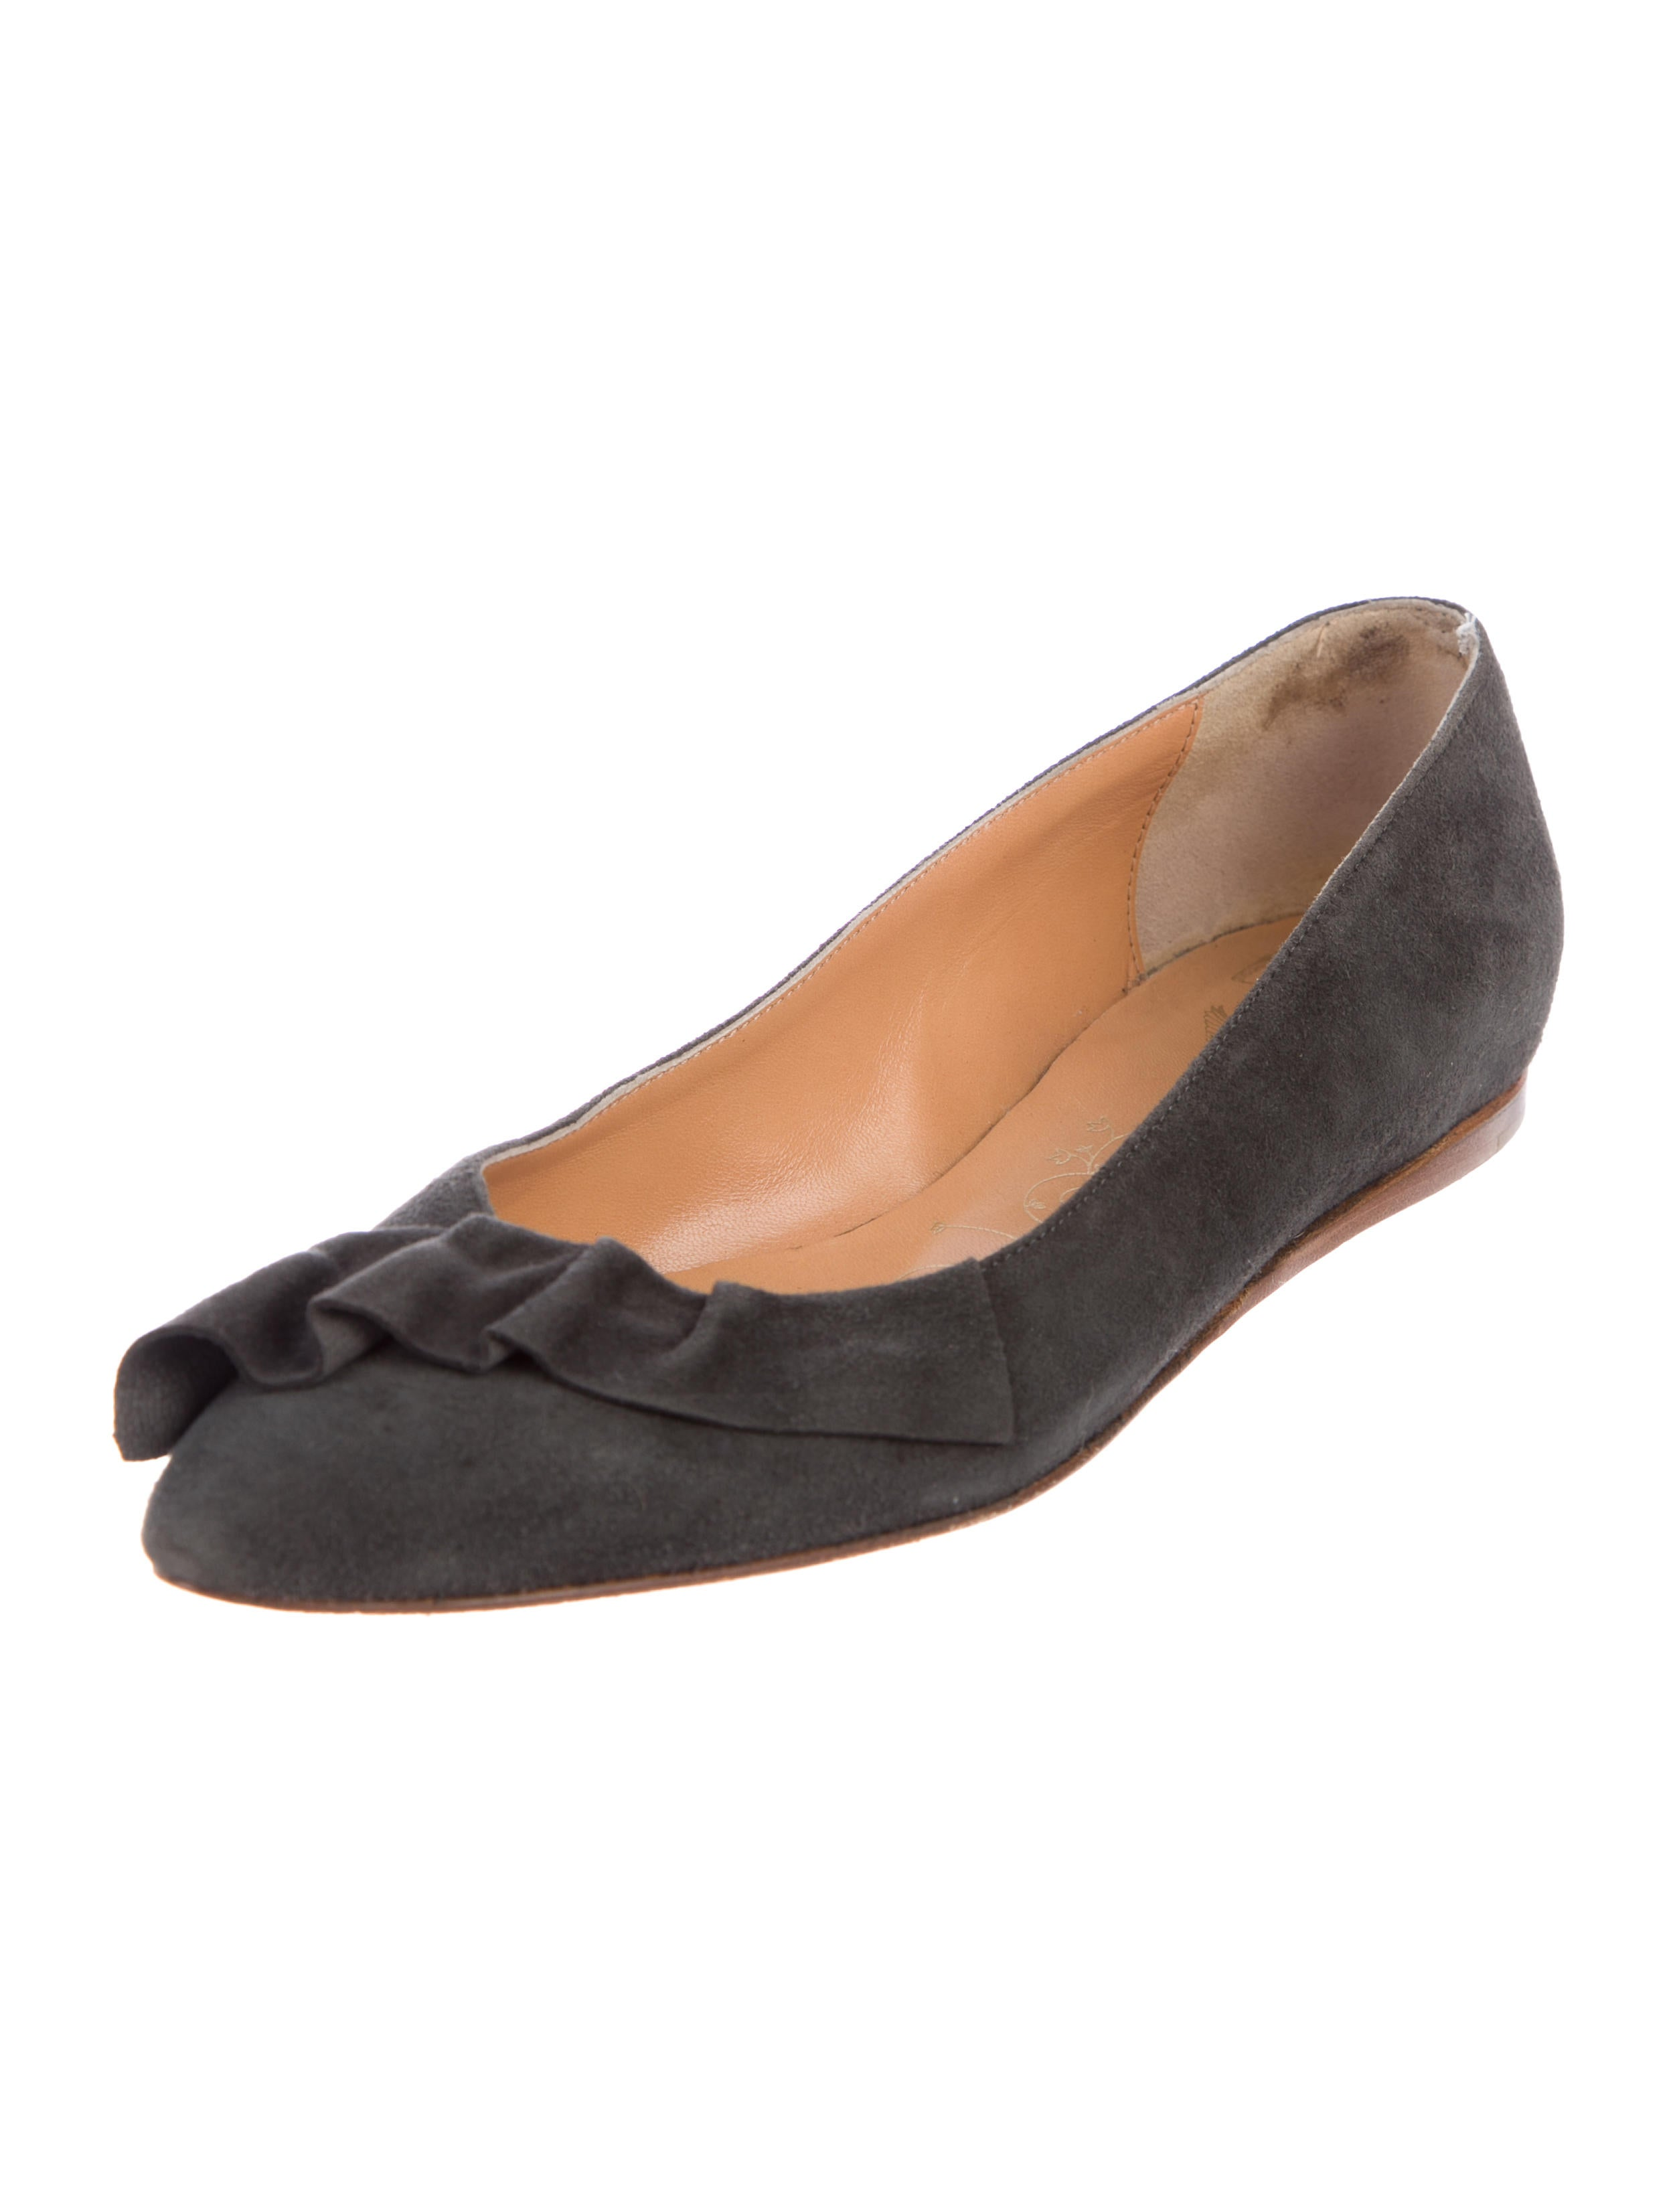 many kinds of cheap price Tibi Suede Ruffle Flats visa payment sale online latest cheap online store with big discount KmLYSXI9cW